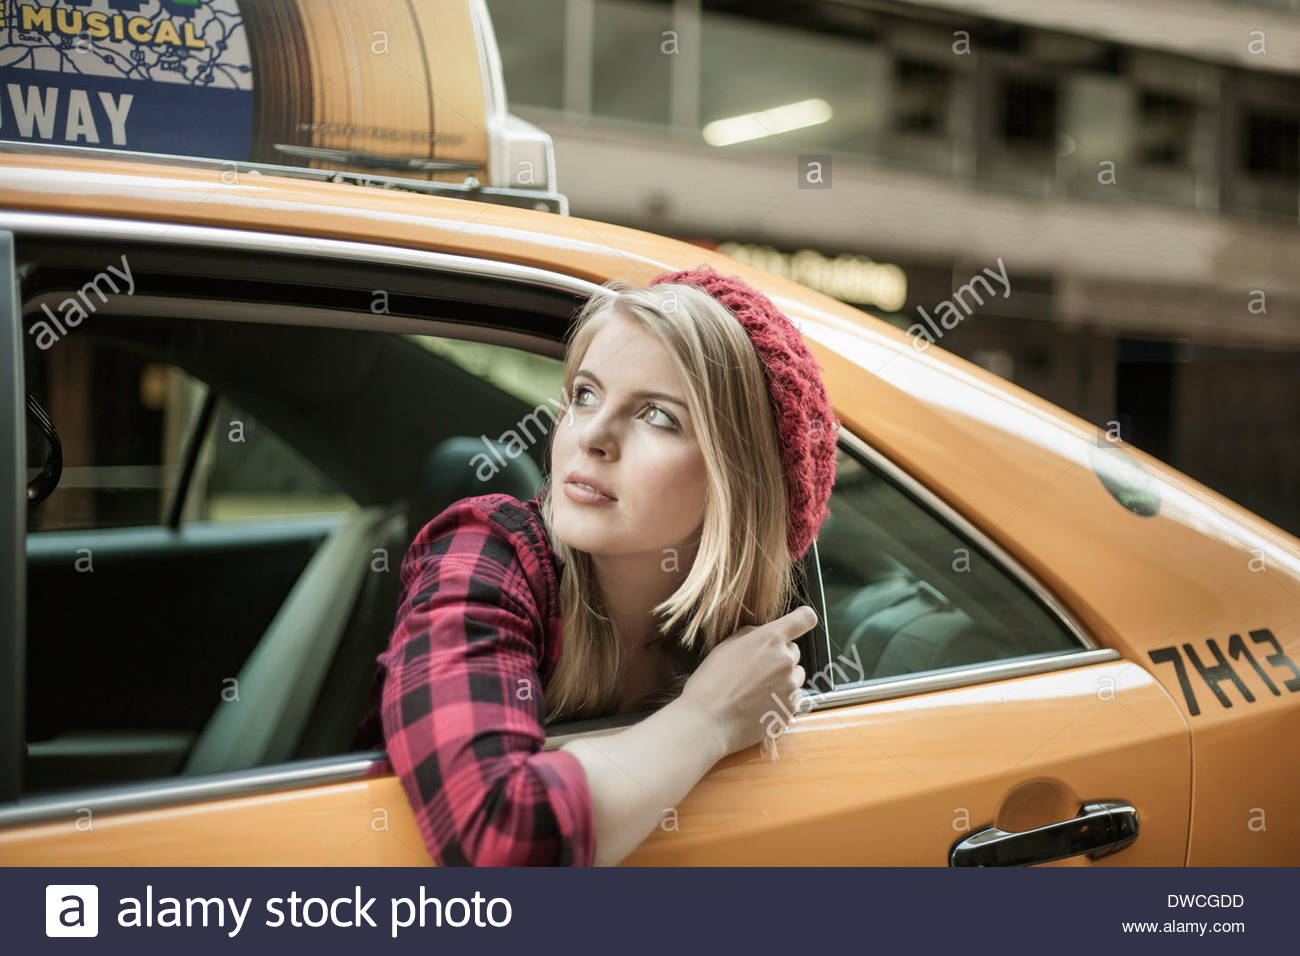 Young woman looking out from yellow cab, New York City, USA - Stock Image